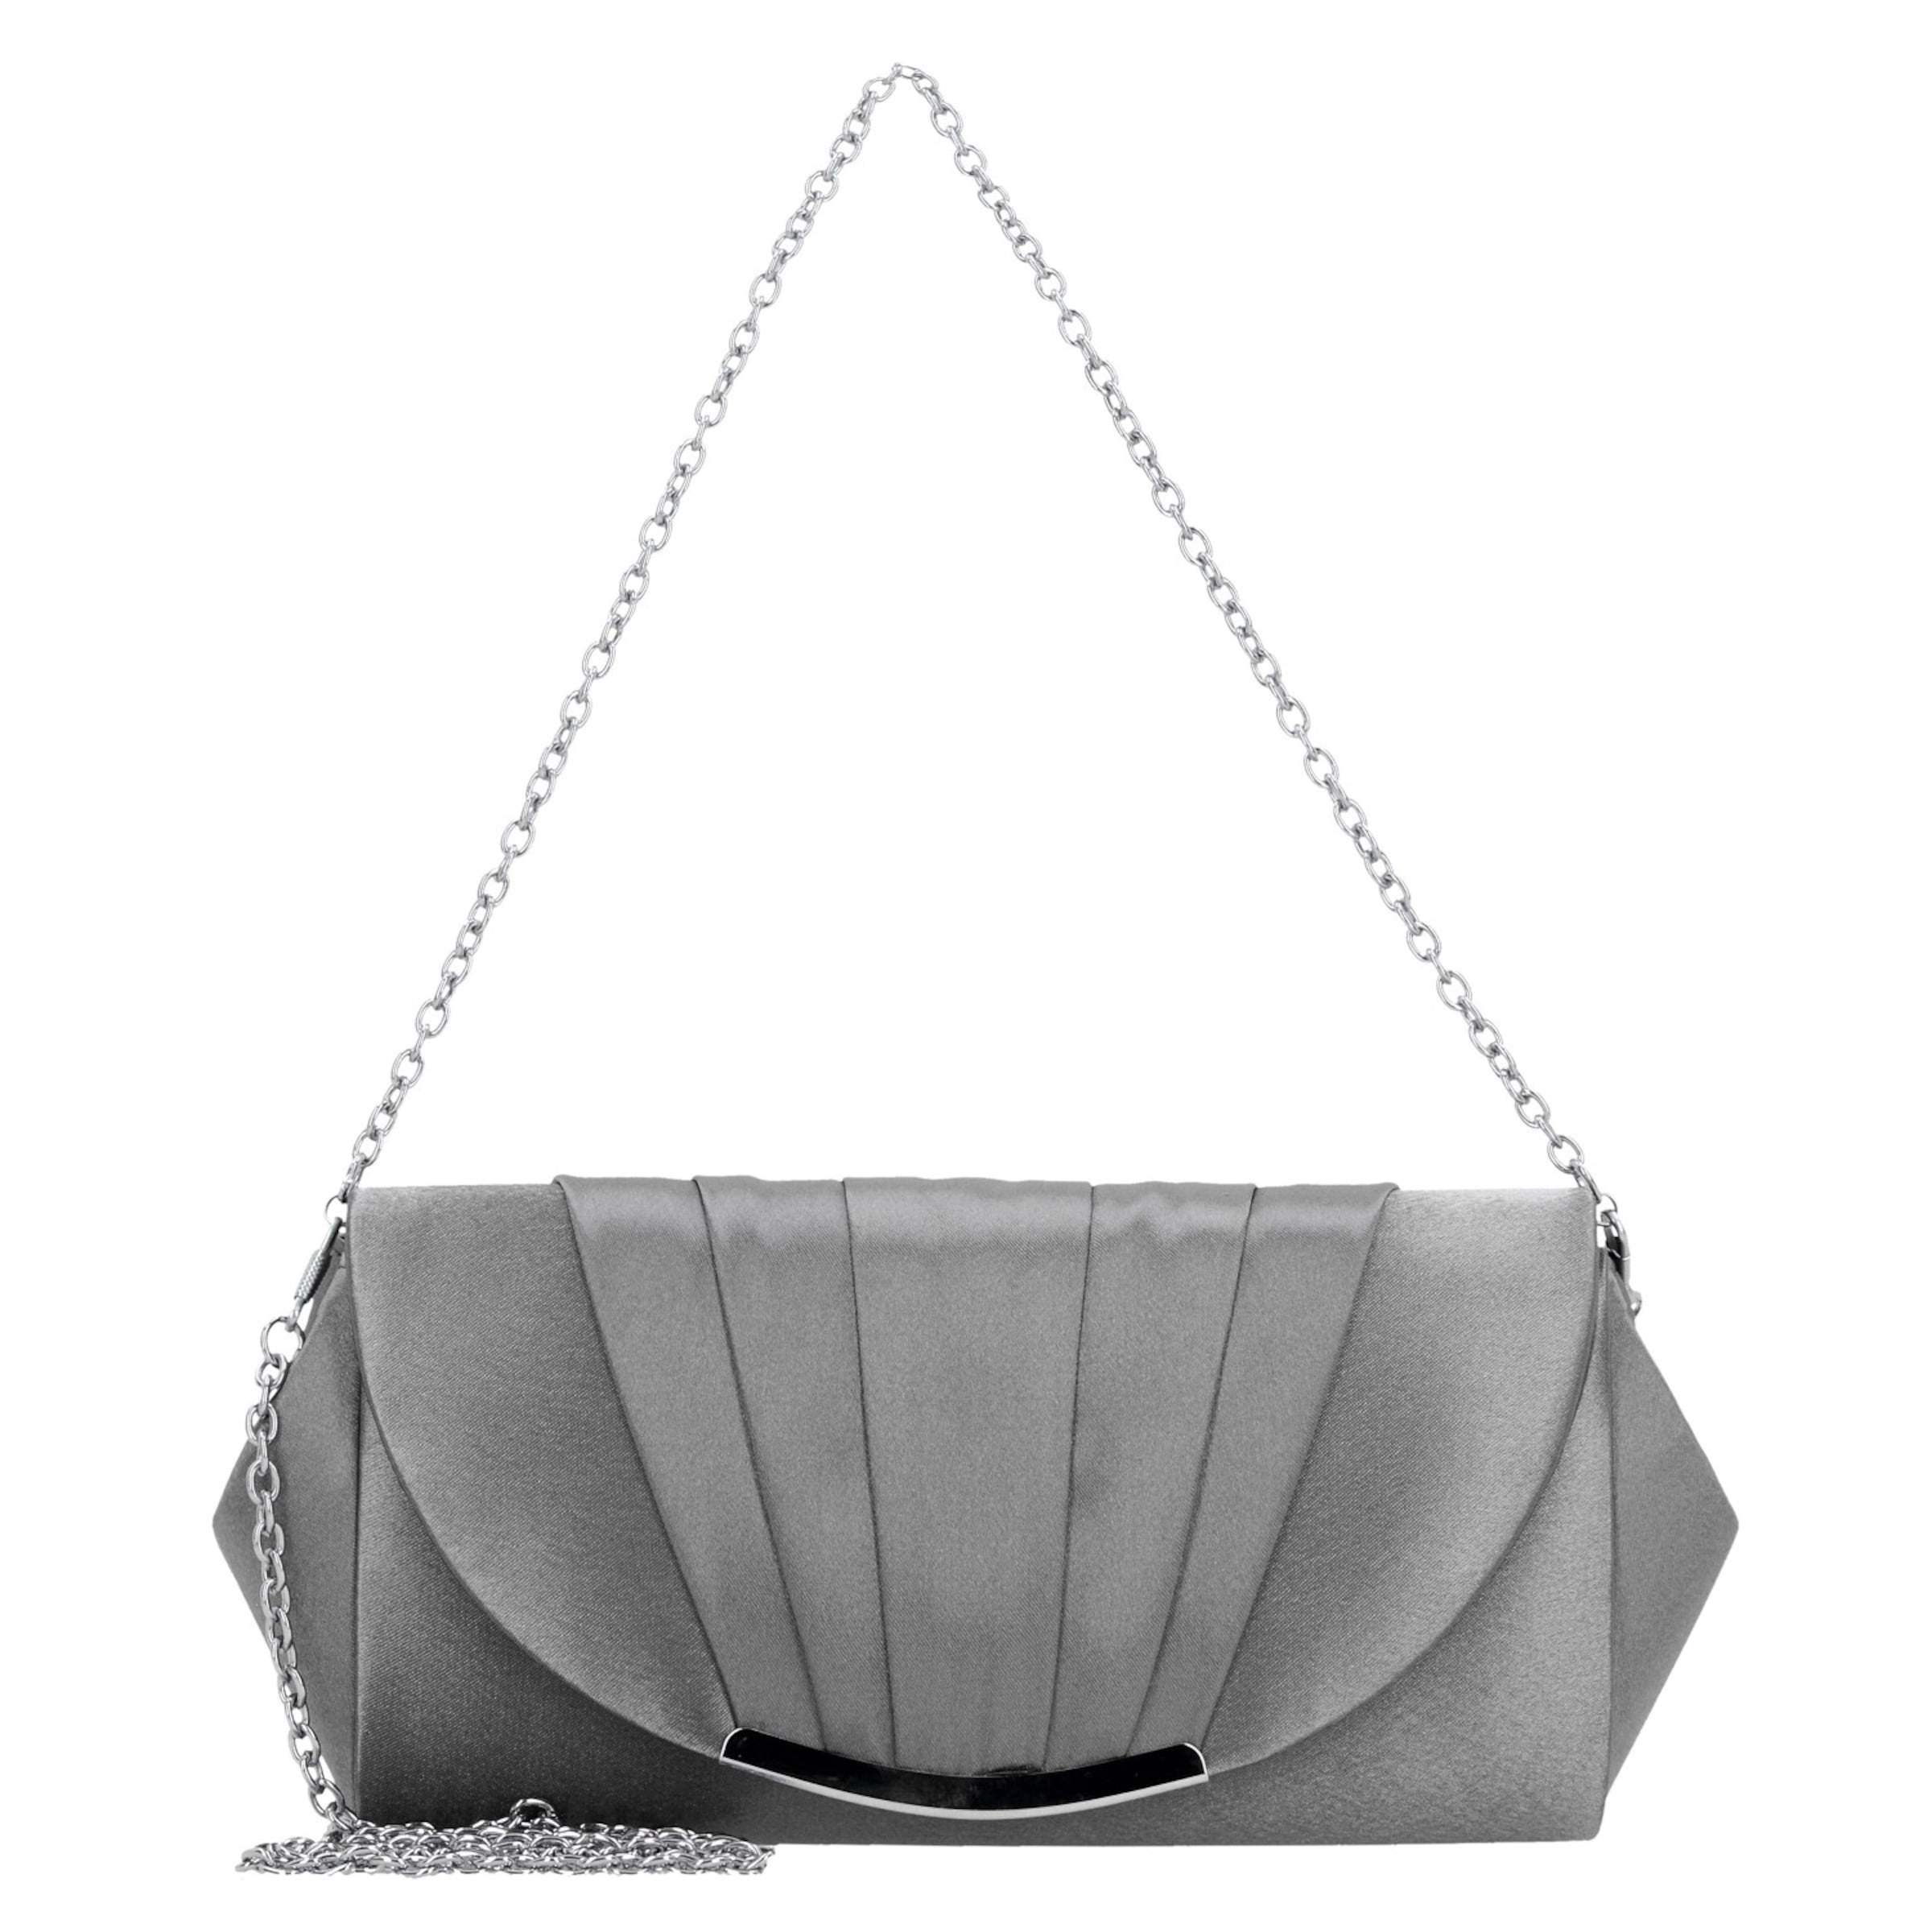 In Picard In Abendtasche 'scala' Picard Grau In Grau 'scala' Abendtasche 'scala' Picard Abendtasche doWrBeCx